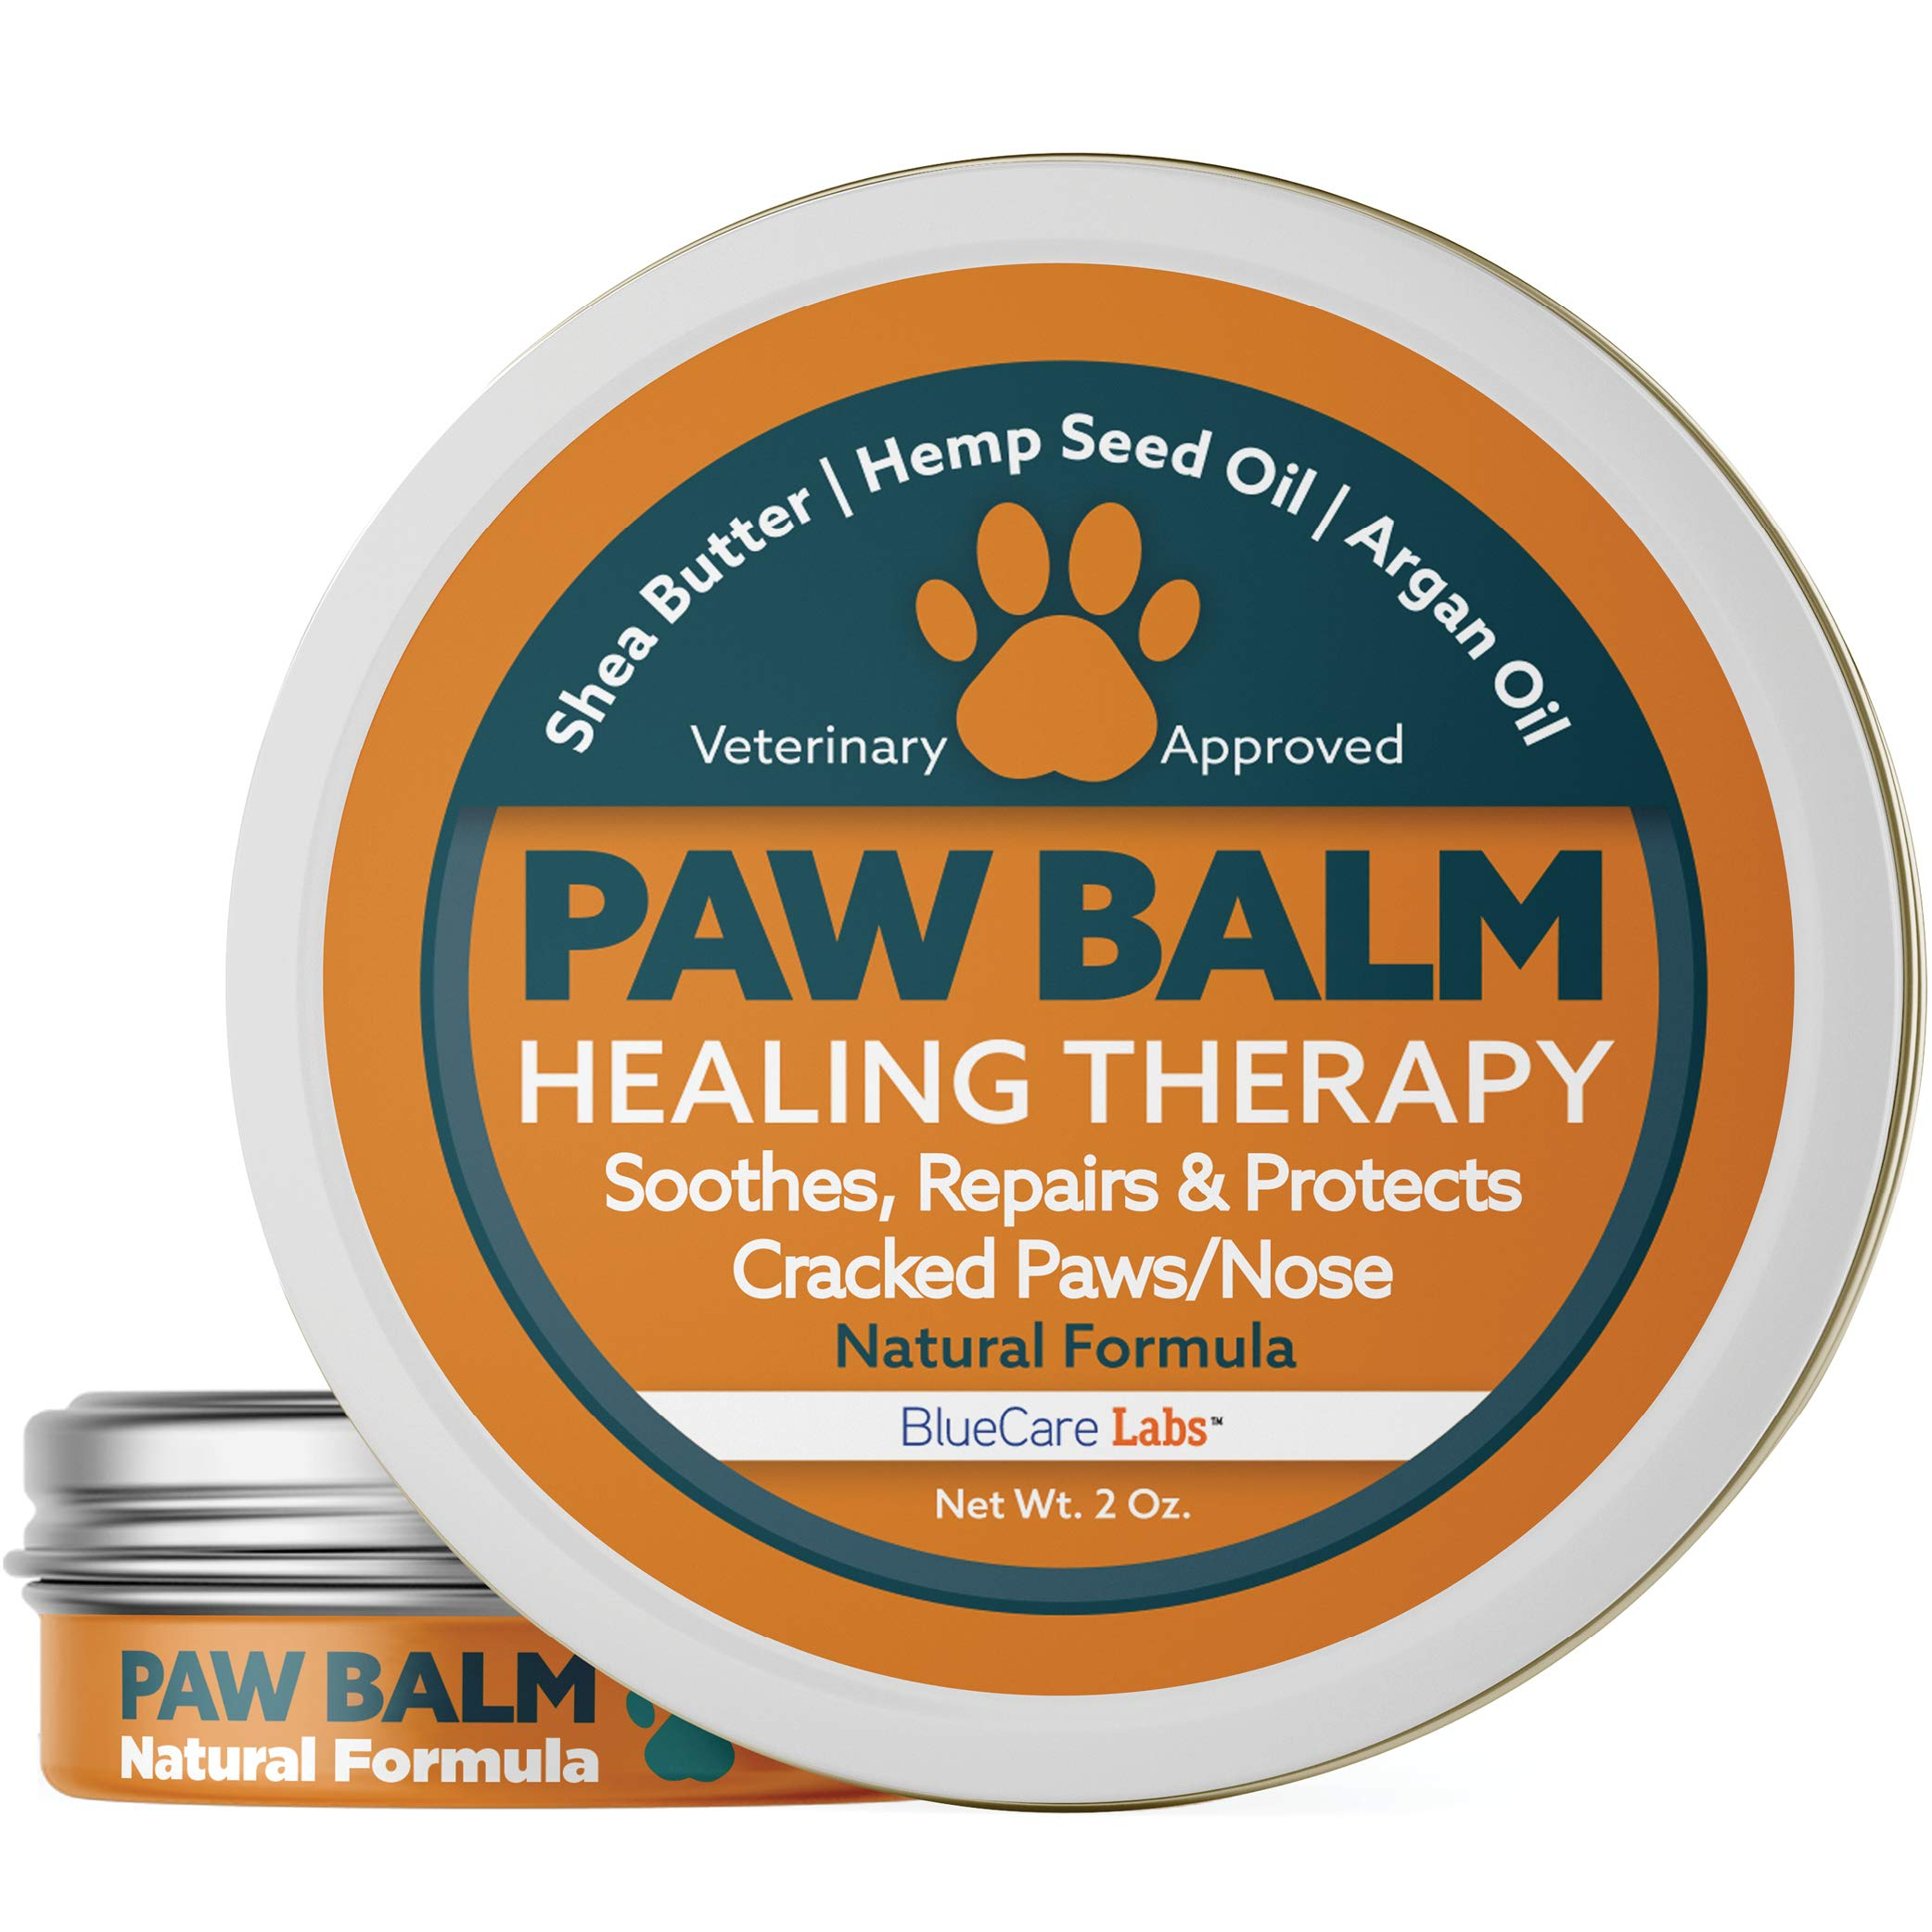 Natural Organic Paw and Nose Balm Wax for Dogs Paw Cream Moisturiser for Dog Pads Paw Protection for Cracked Paws Repairs and Heals Paw Pads Dry Chapped Paw Care with Vitamin E & Aloe Made in the USA by BlueCare Labs